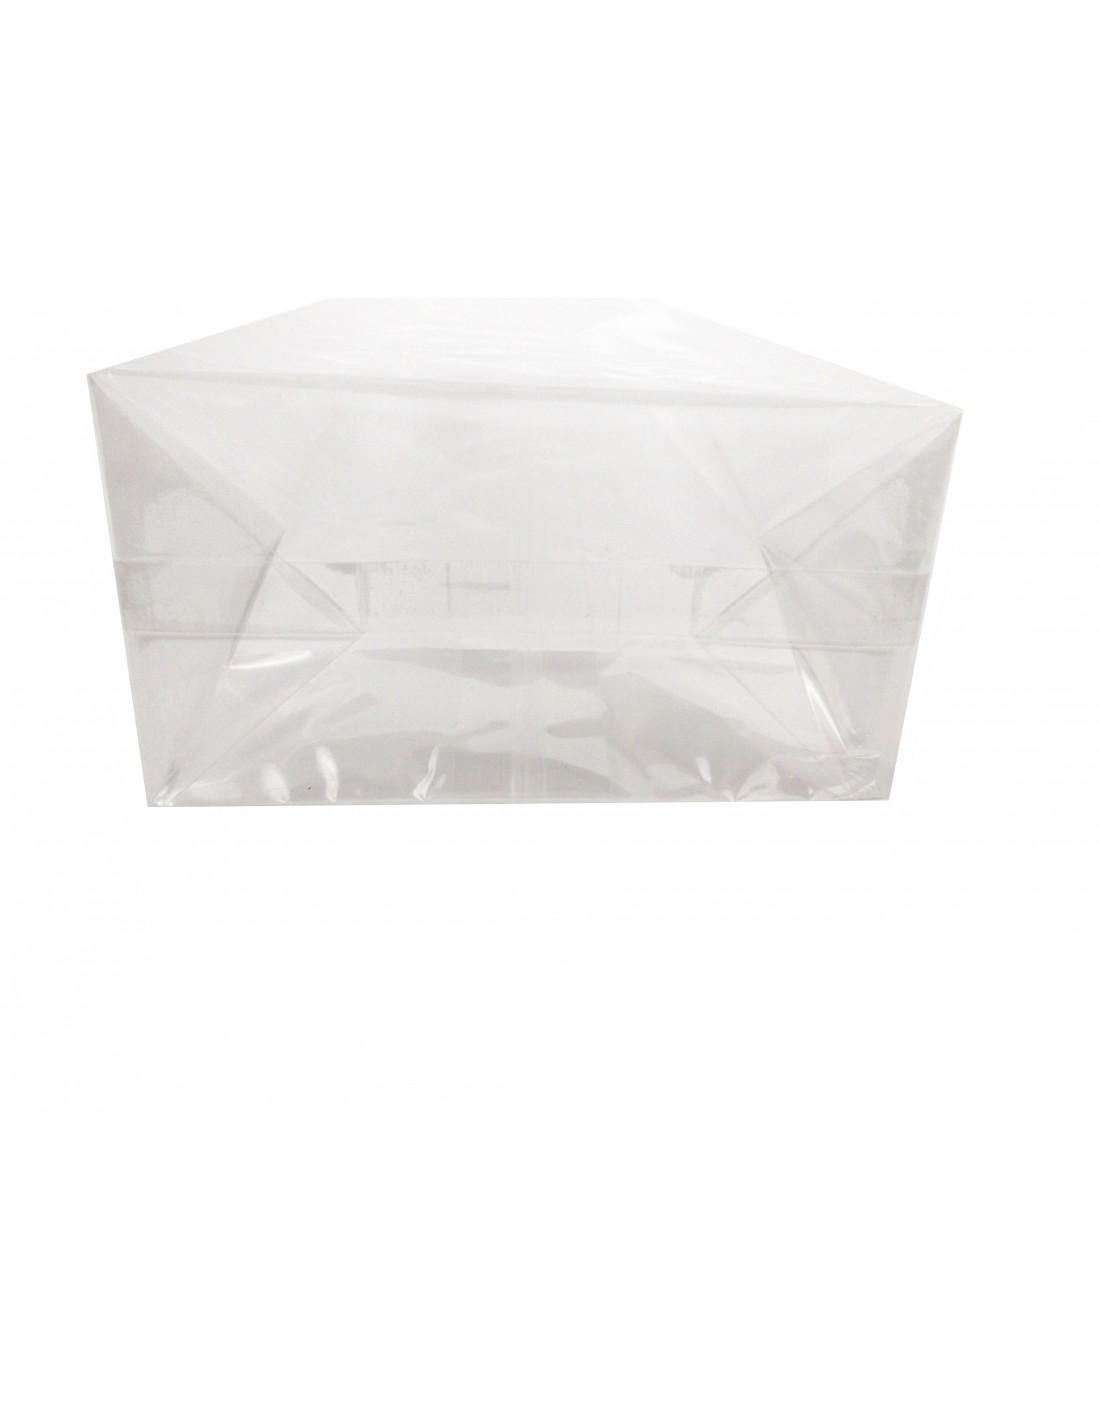 Transparent//Heat Seal Gusset pouch//bag with clear block bottom//gift//food